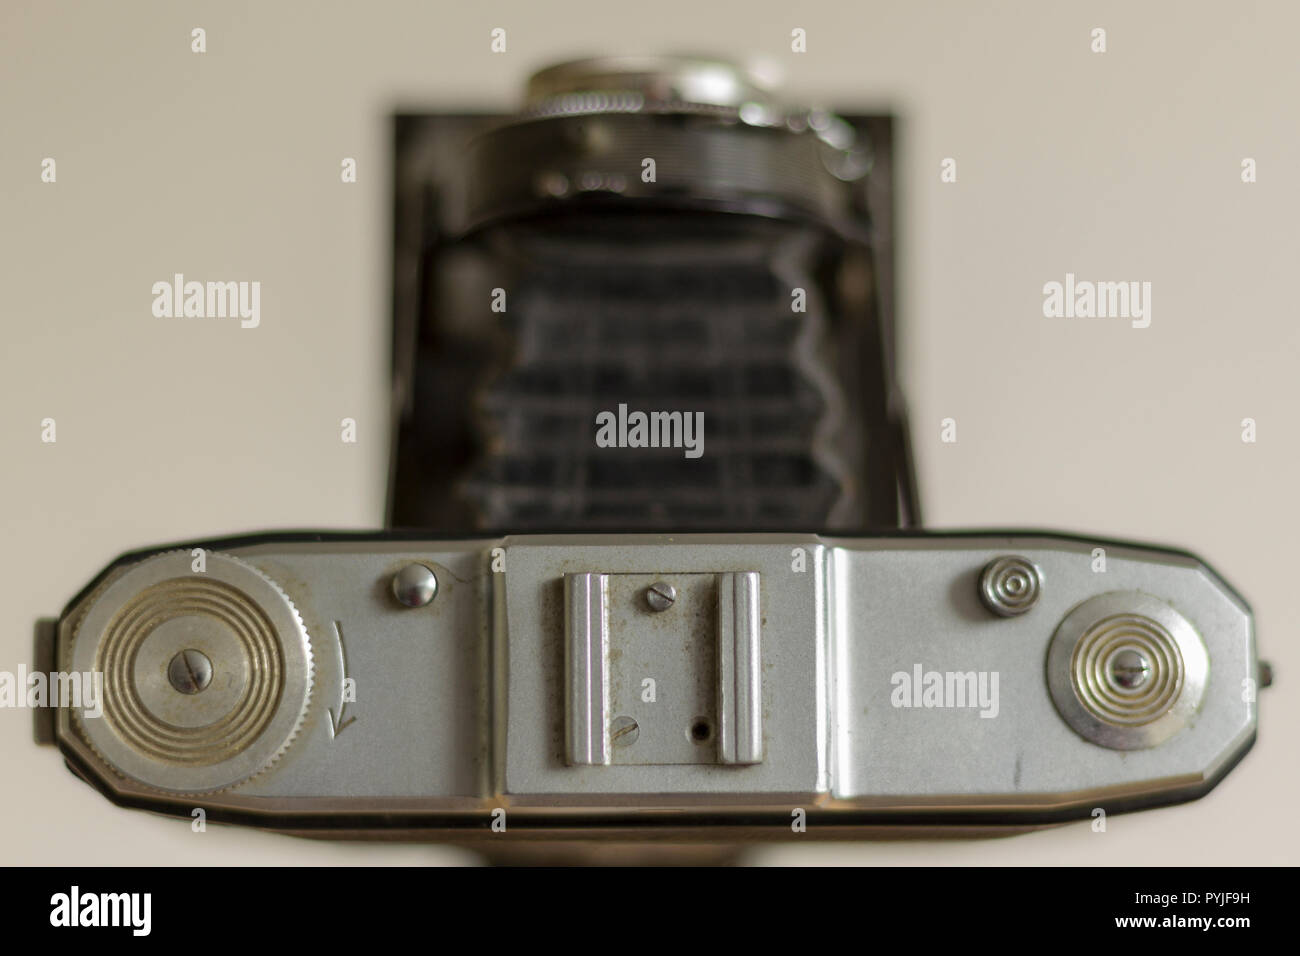 Overhead view of 120mm film camera with a folding bellows lens (out of focus) focussing on the film wind-on and shutter release buttons and flash shoe - Stock Image